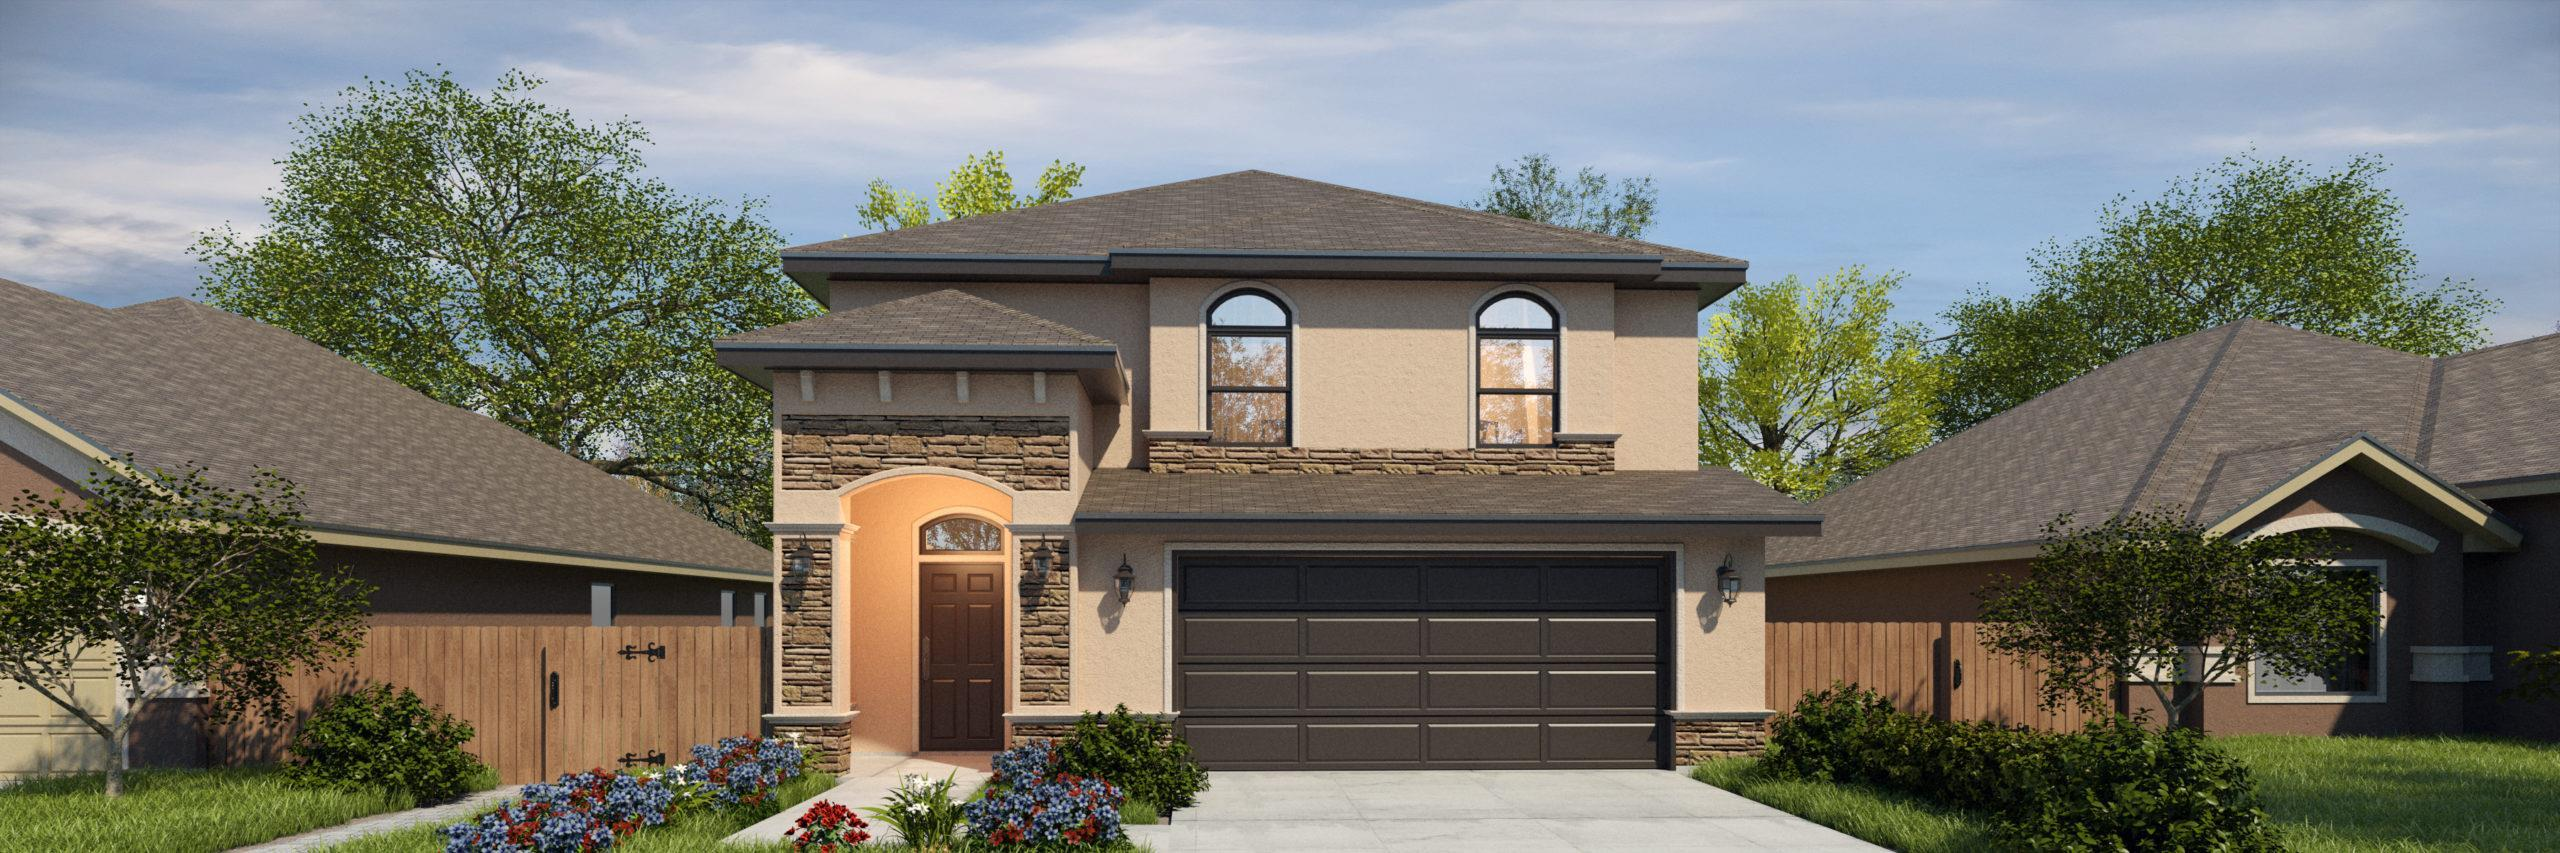 Exterior featured in the San Felipe II By WestWind Homes in Rio Grande Valley, TX